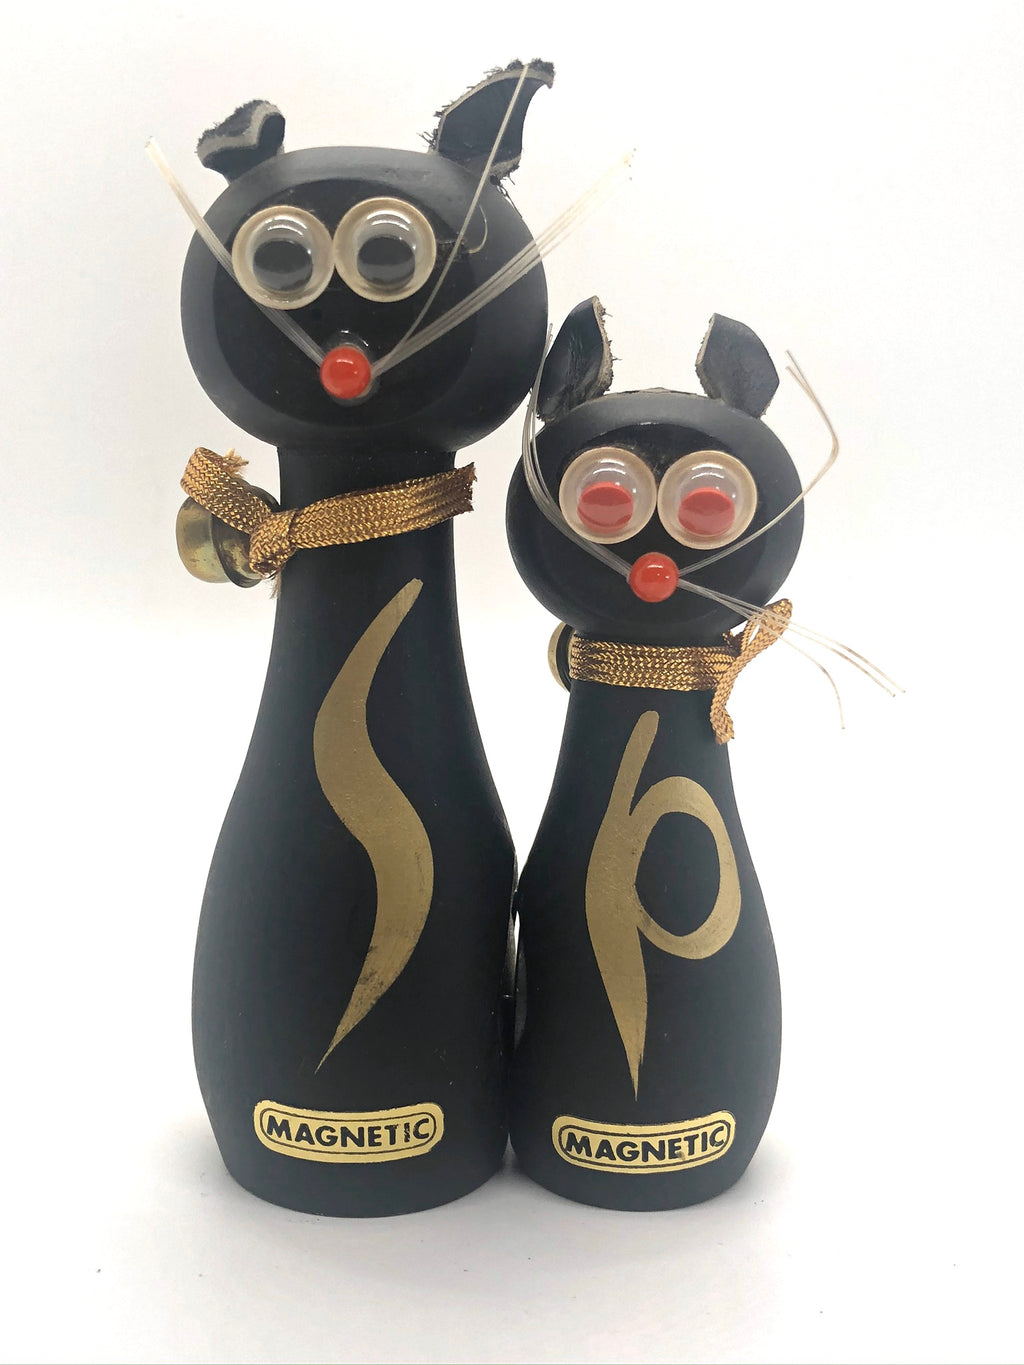 MAGNETIC Black Cat Vintage Salt & Pepper Shakers